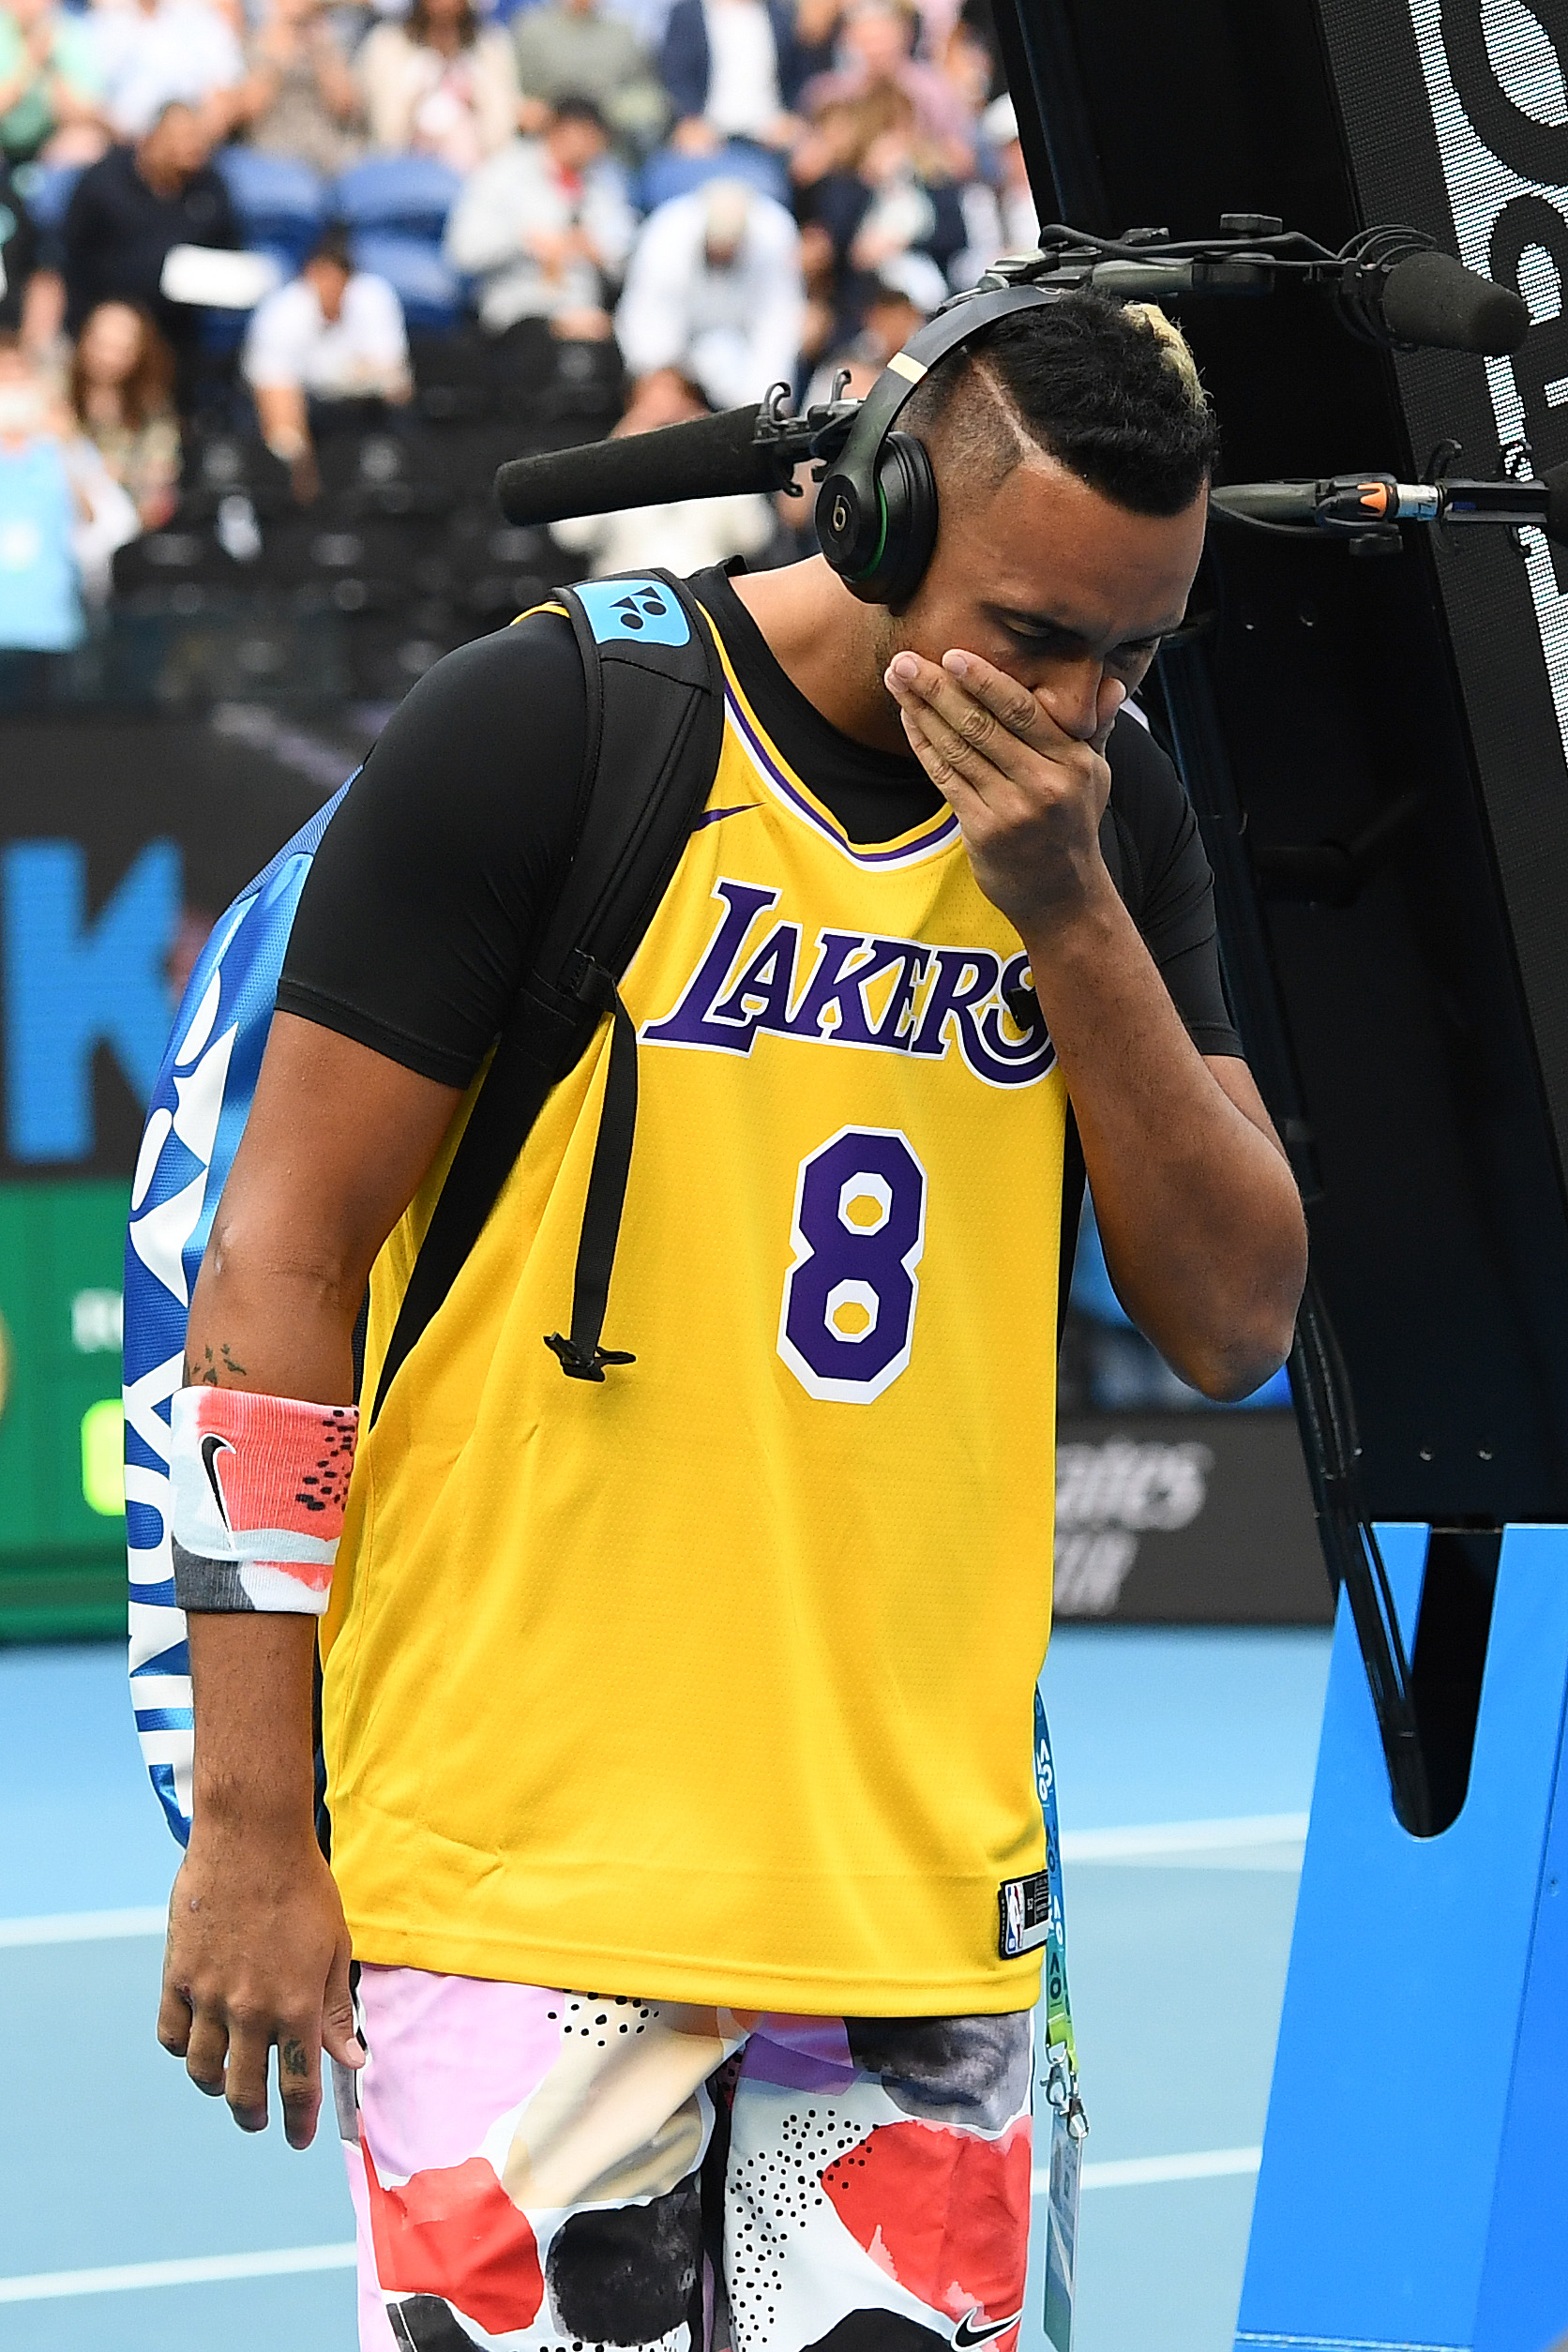 Rafael Nadal and Nick Kyrgios pay tribute to Kobe Bryant during Australian Open